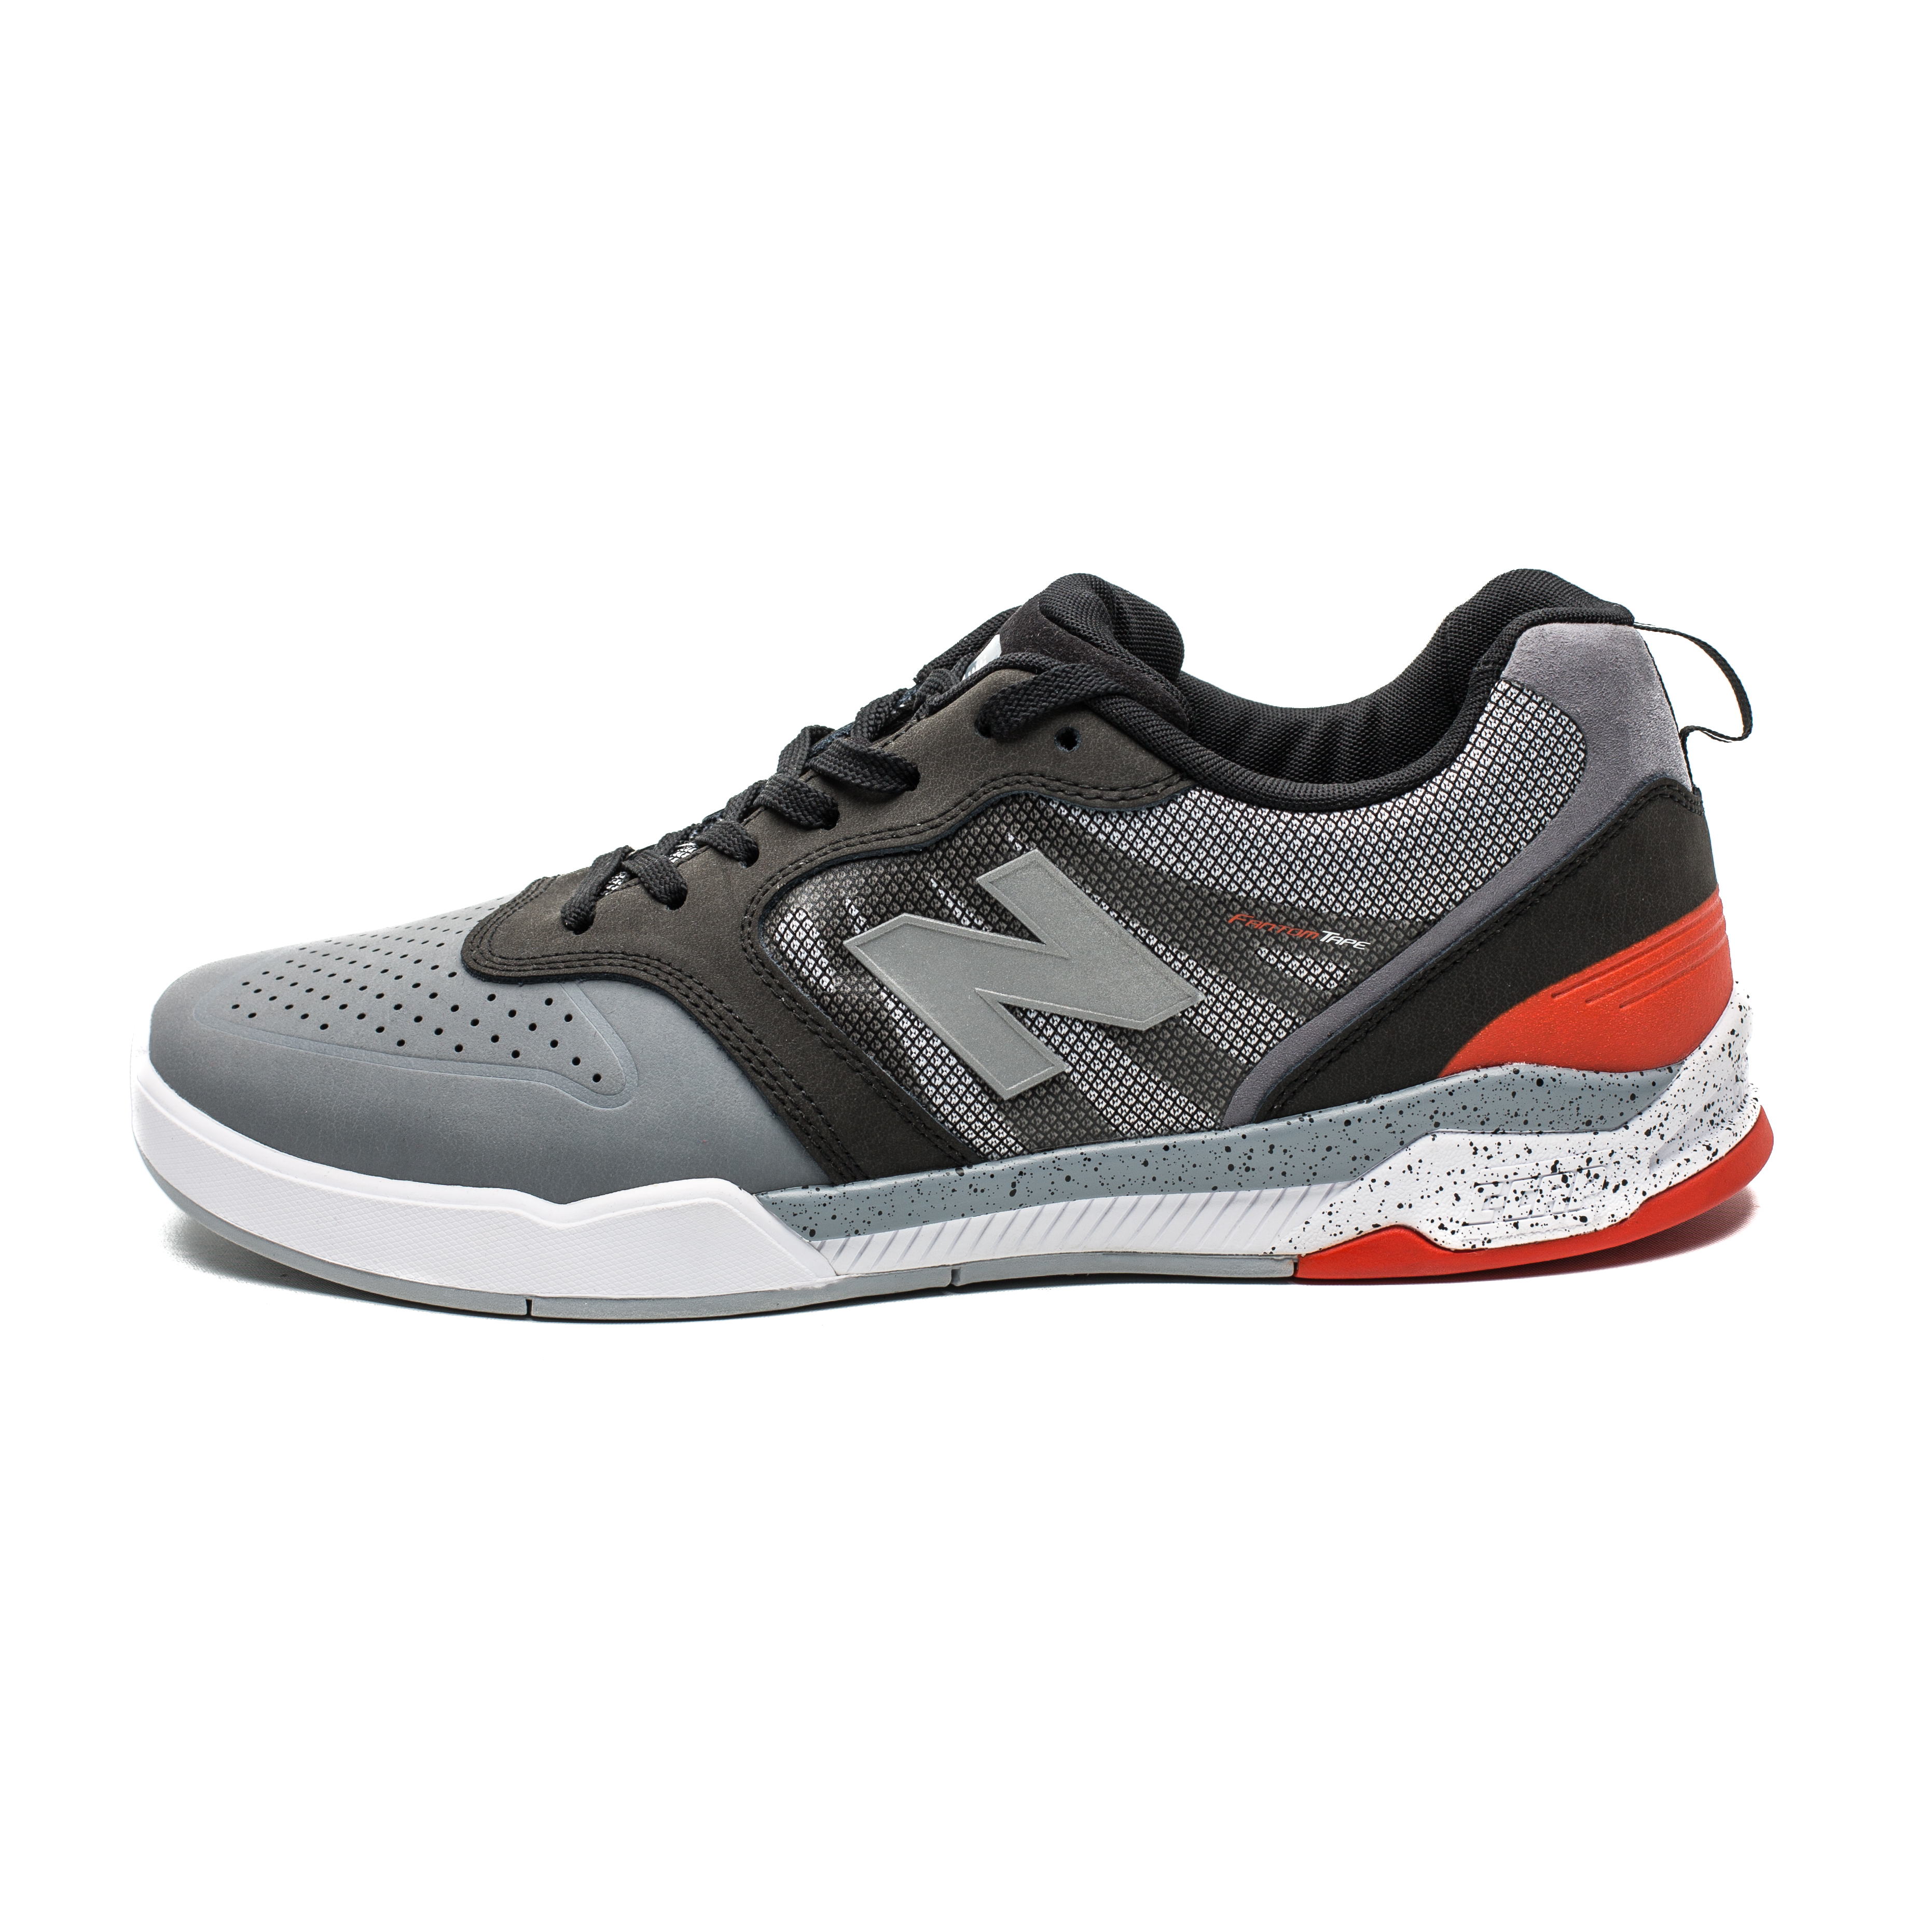 New Balance Numeric 868 - Weartested - detailed skate shoe reviews